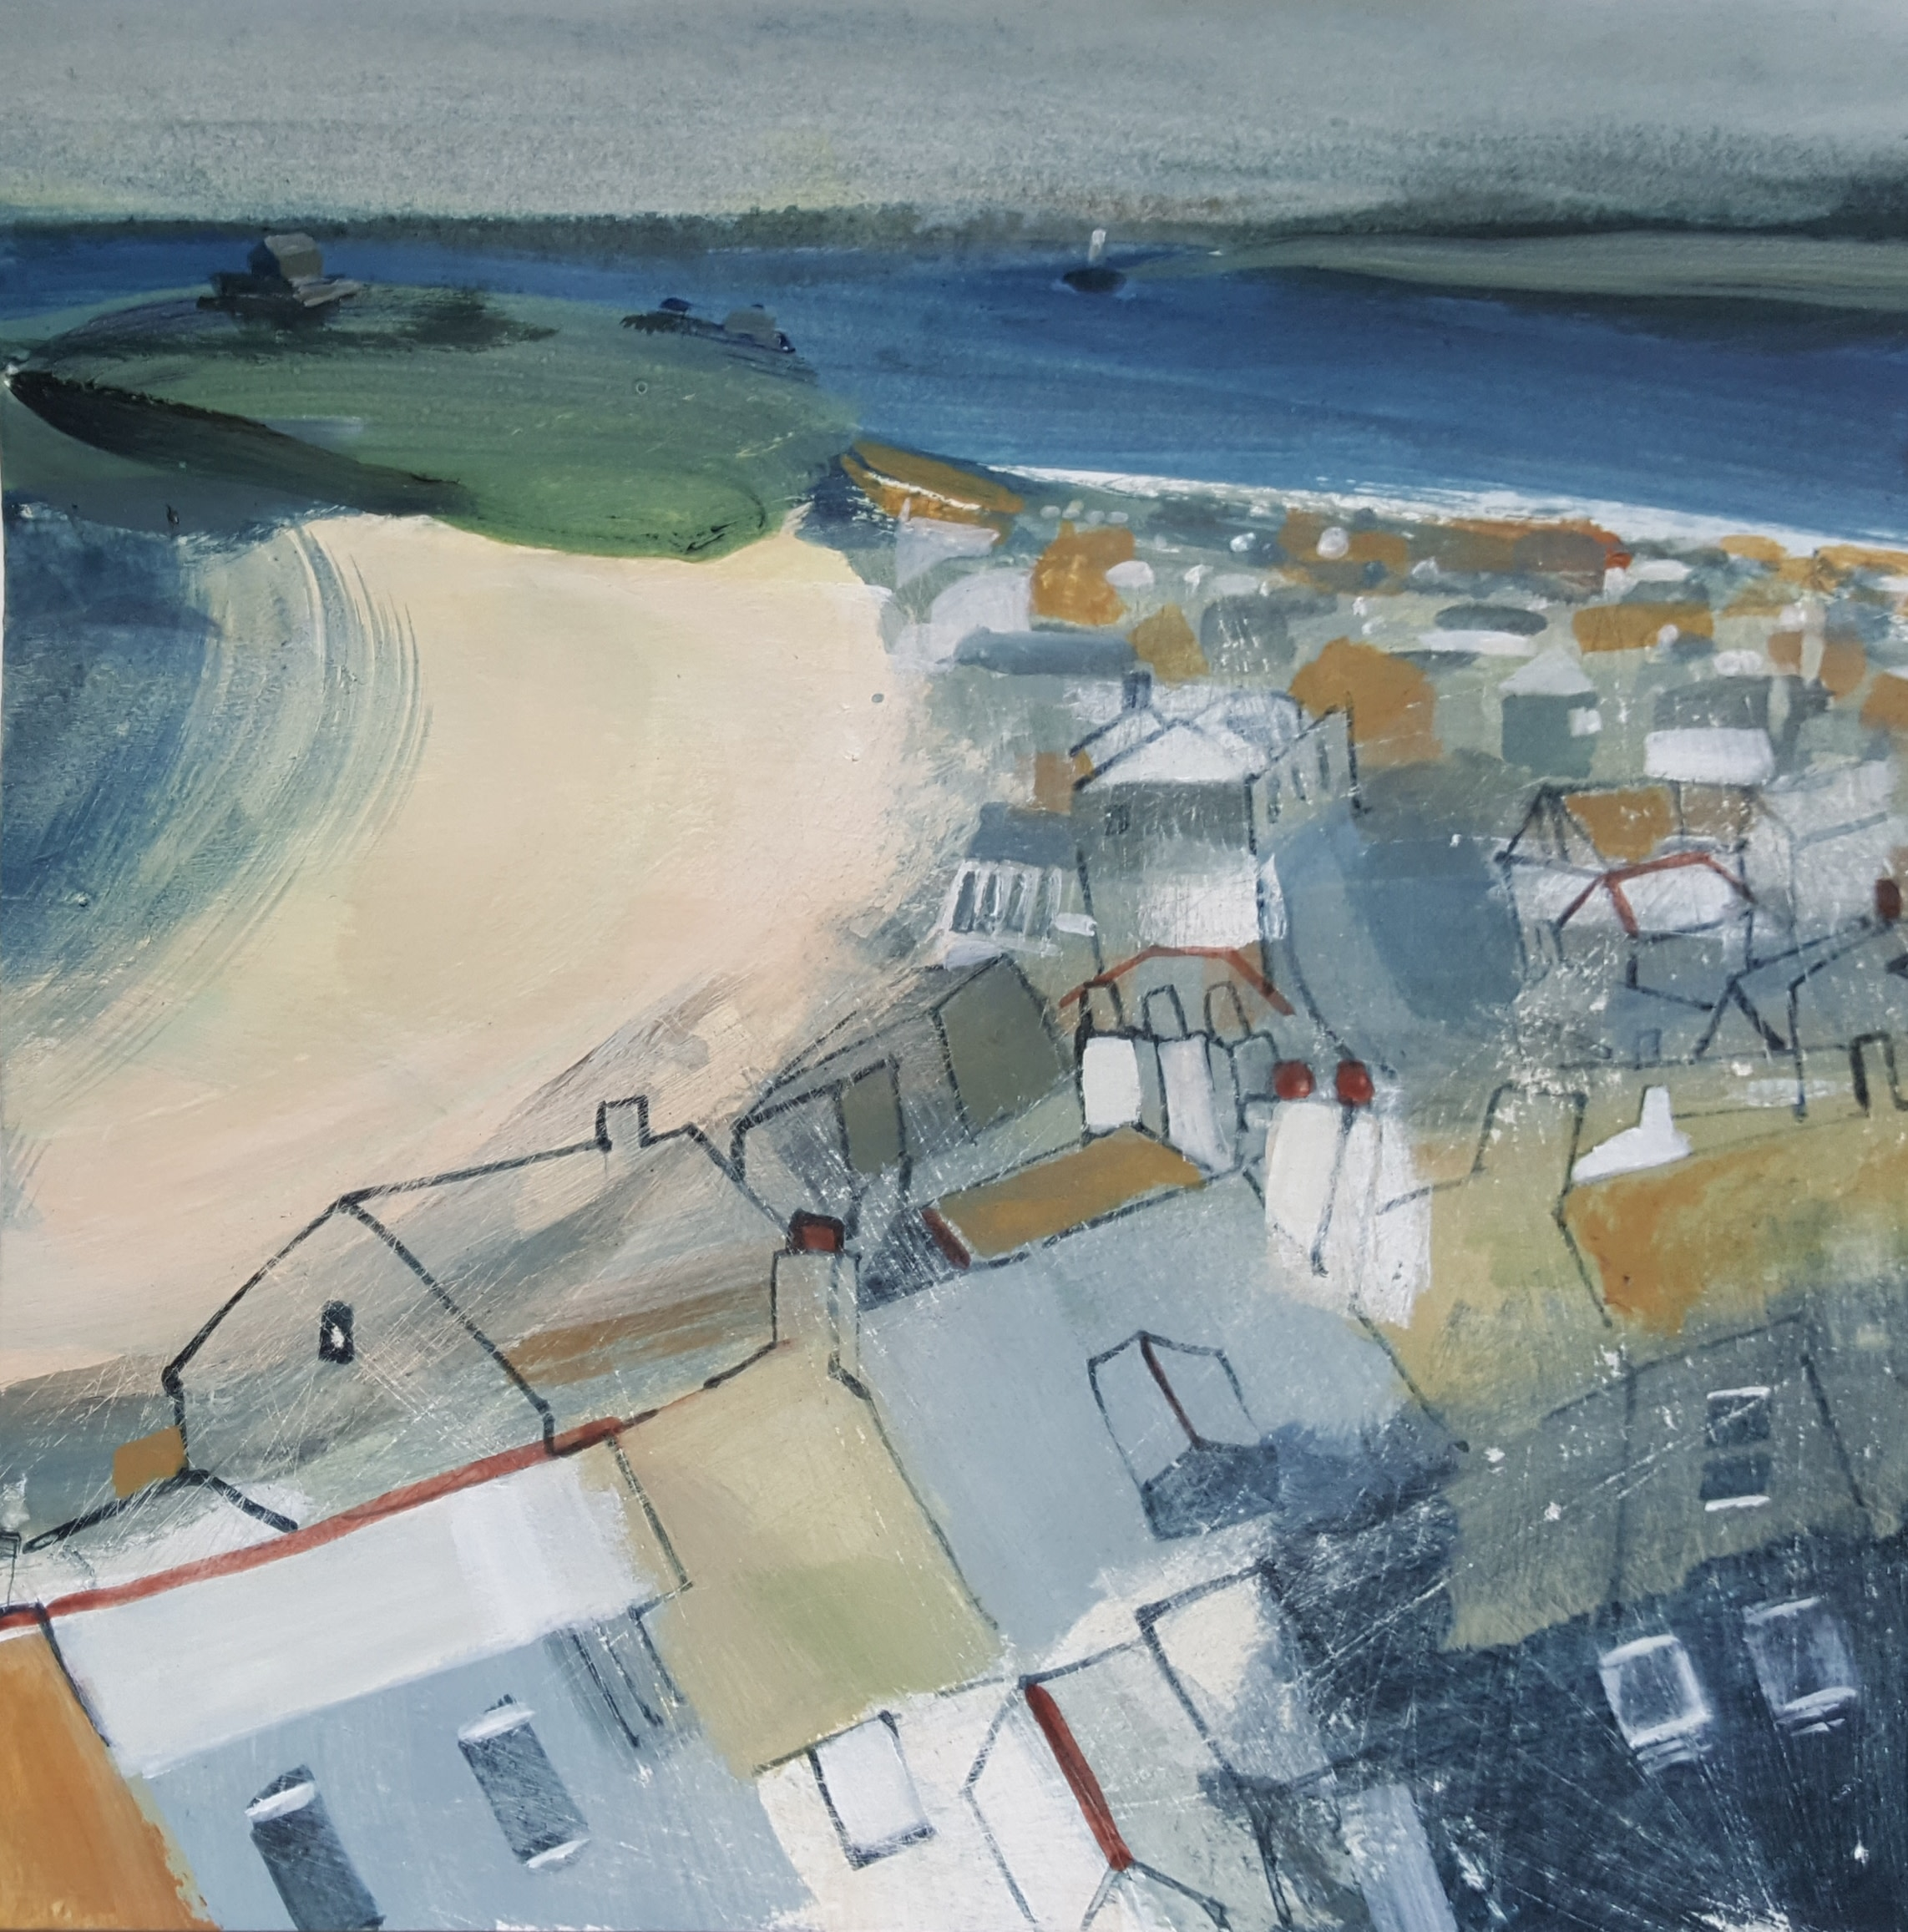 <span class=&#34;link fancybox-details-link&#34;><a href=&#34;/artists/177-jane-askey/works/5517-jane-askey-roof-tops-and-porthmeor-beach-2018/&#34;>View Detail Page</a></span><div class=&#34;artist&#34;><strong>Jane Askey</strong></div> <div class=&#34;title&#34;><em>Roof Tops and Porthmeor Beach</em>, 2018</div> <div class=&#34;signed_and_dated&#34;>signed</div> <div class=&#34;medium&#34;>mixed media on paper</div> <div class=&#34;dimensions&#34;>38 x 38 cm<br /> 15 x 15 inches</div><div class=&#34;copyright_line&#34;>OwnArt: £ 36.50 x 10 Months, 0% APR</div>